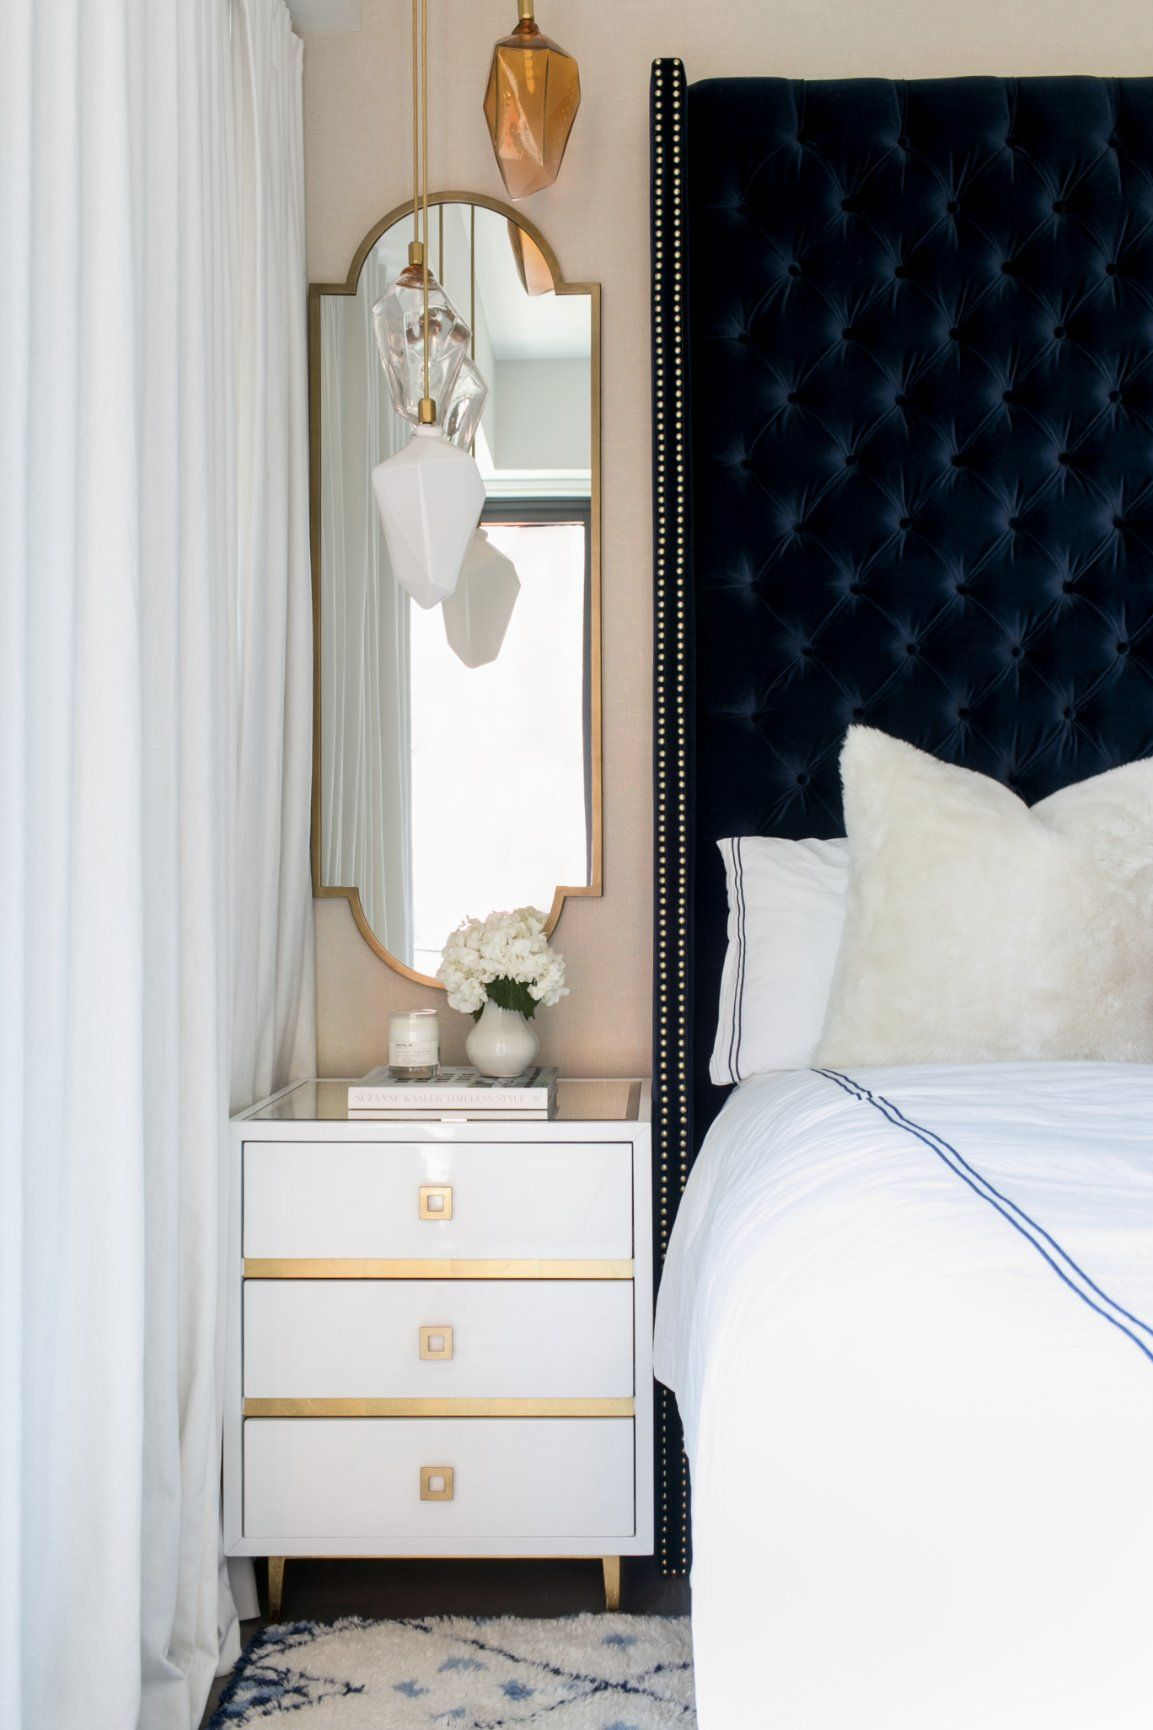 Navy velvet head board, tall headboard bed, mirror over